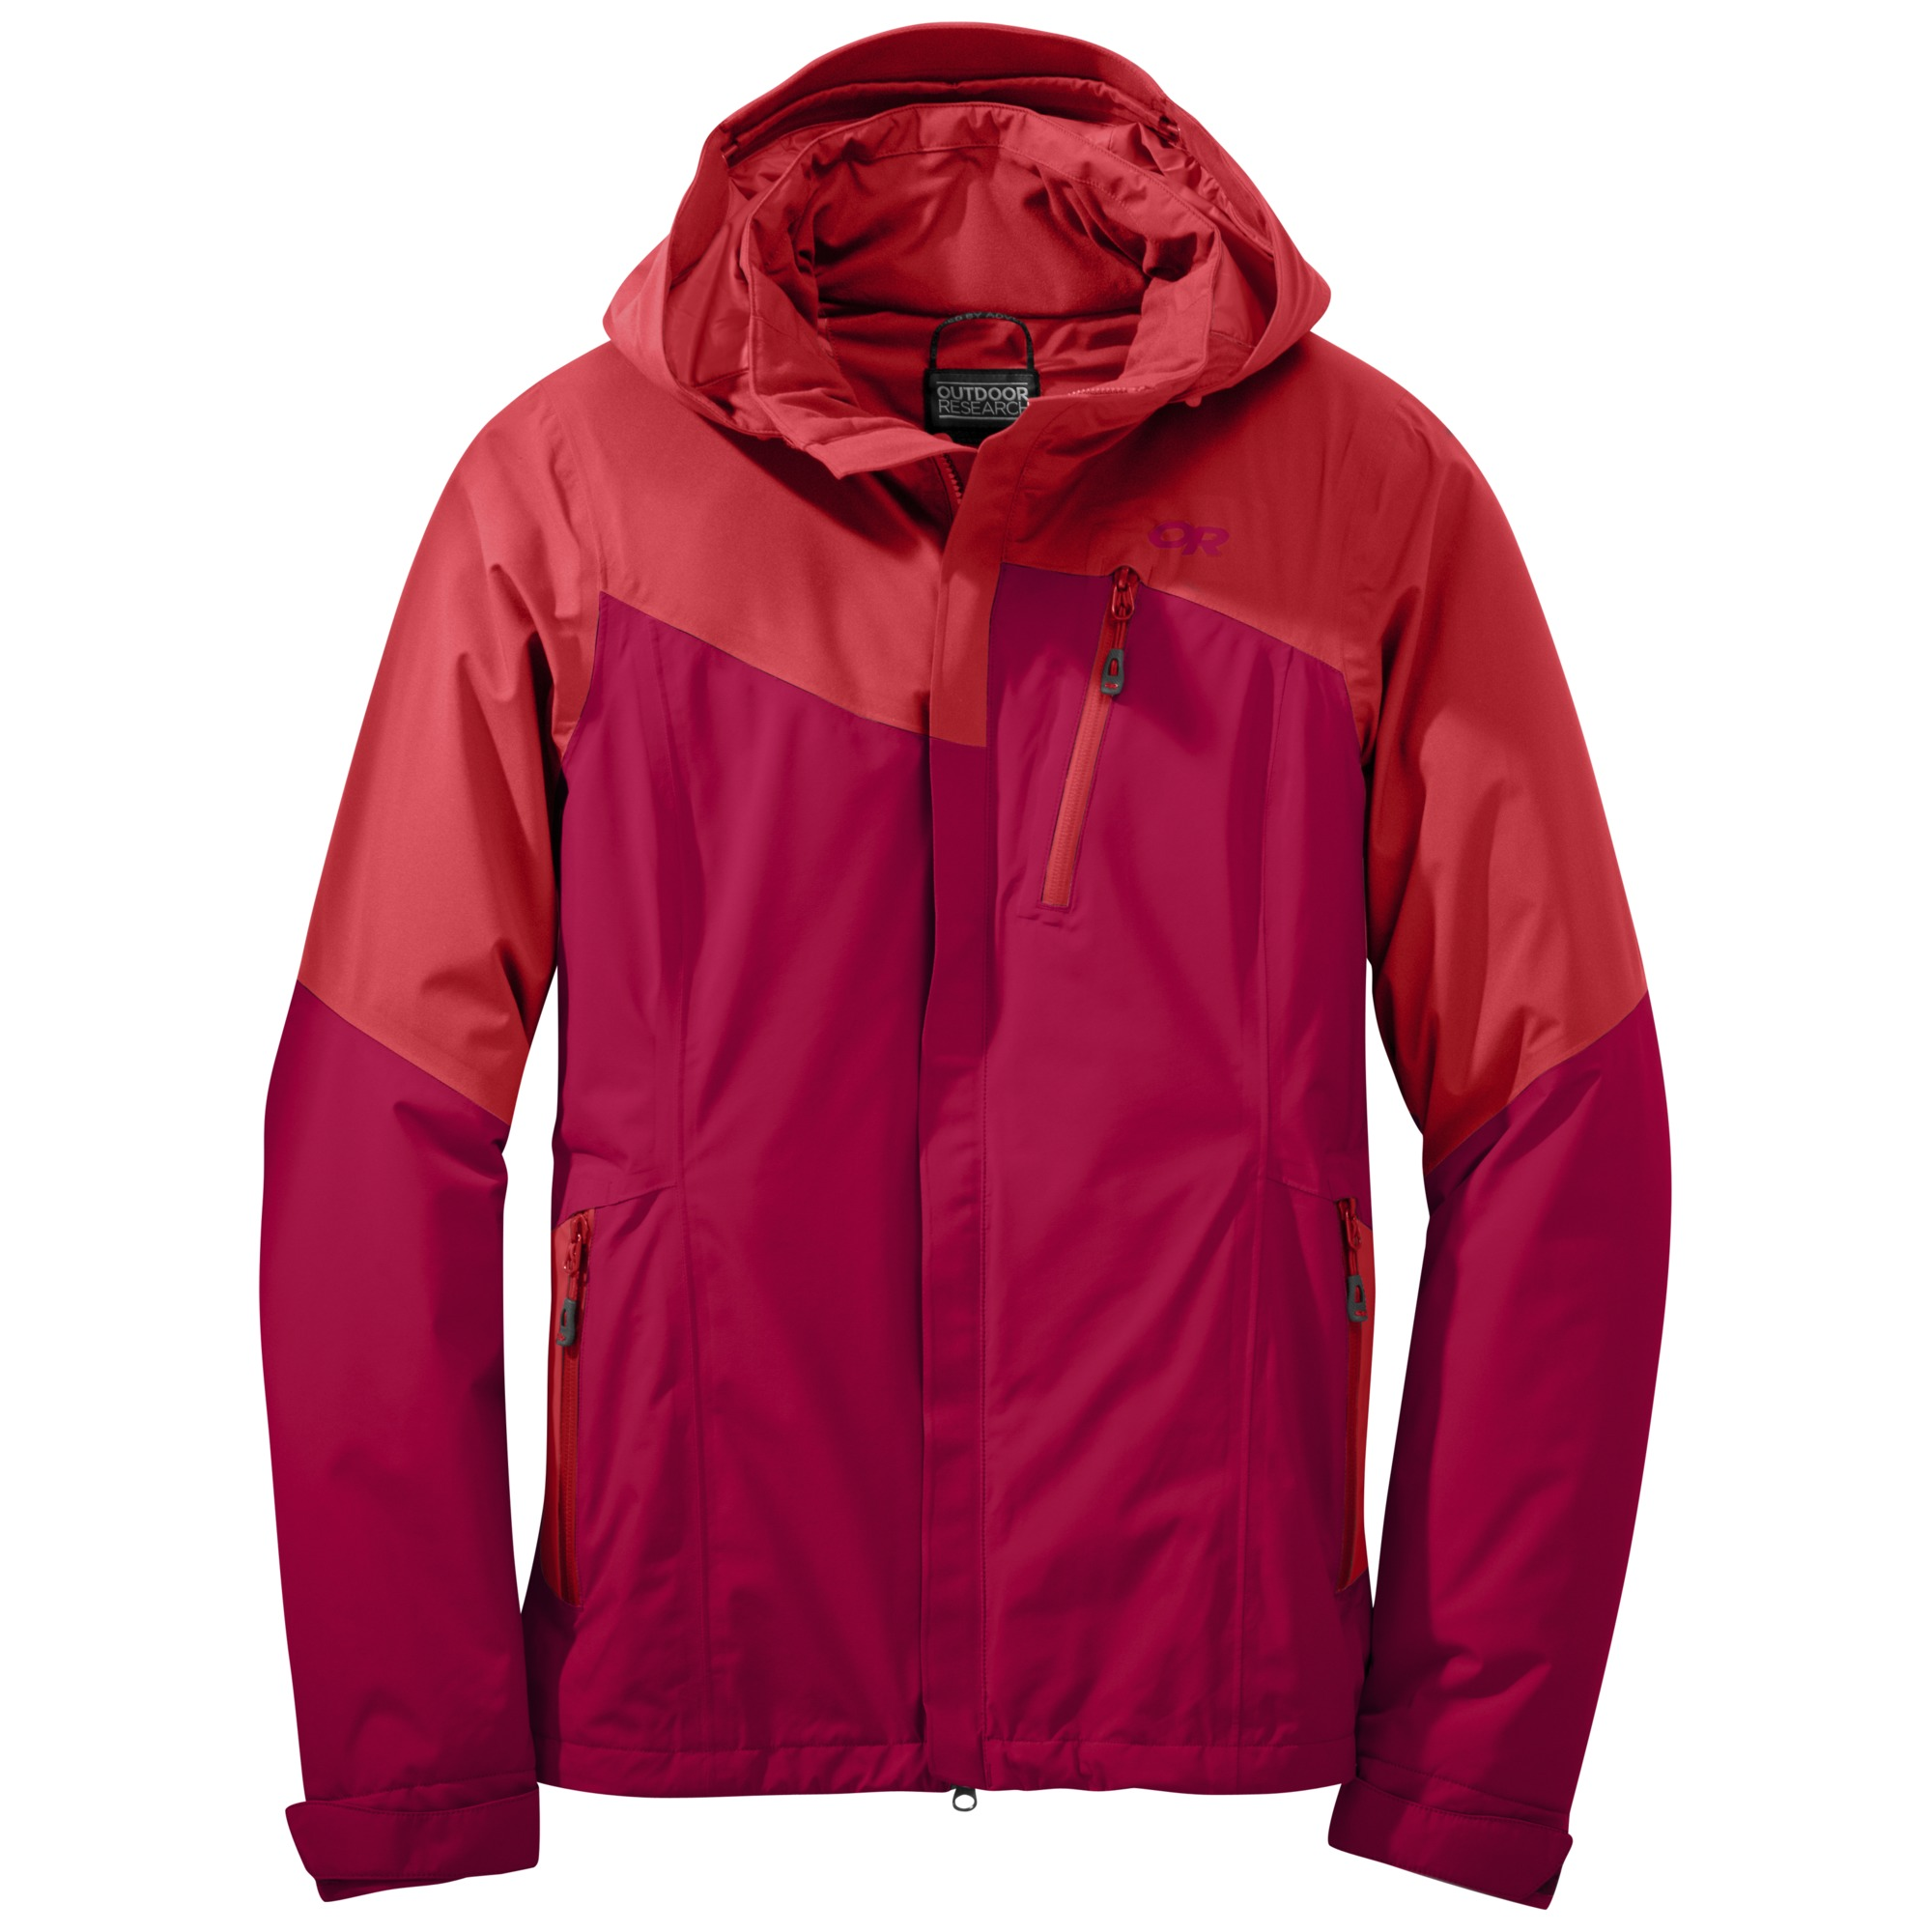 11e486104 Women's Offchute Jacket™ - flame/scarlet | Outdoor Research